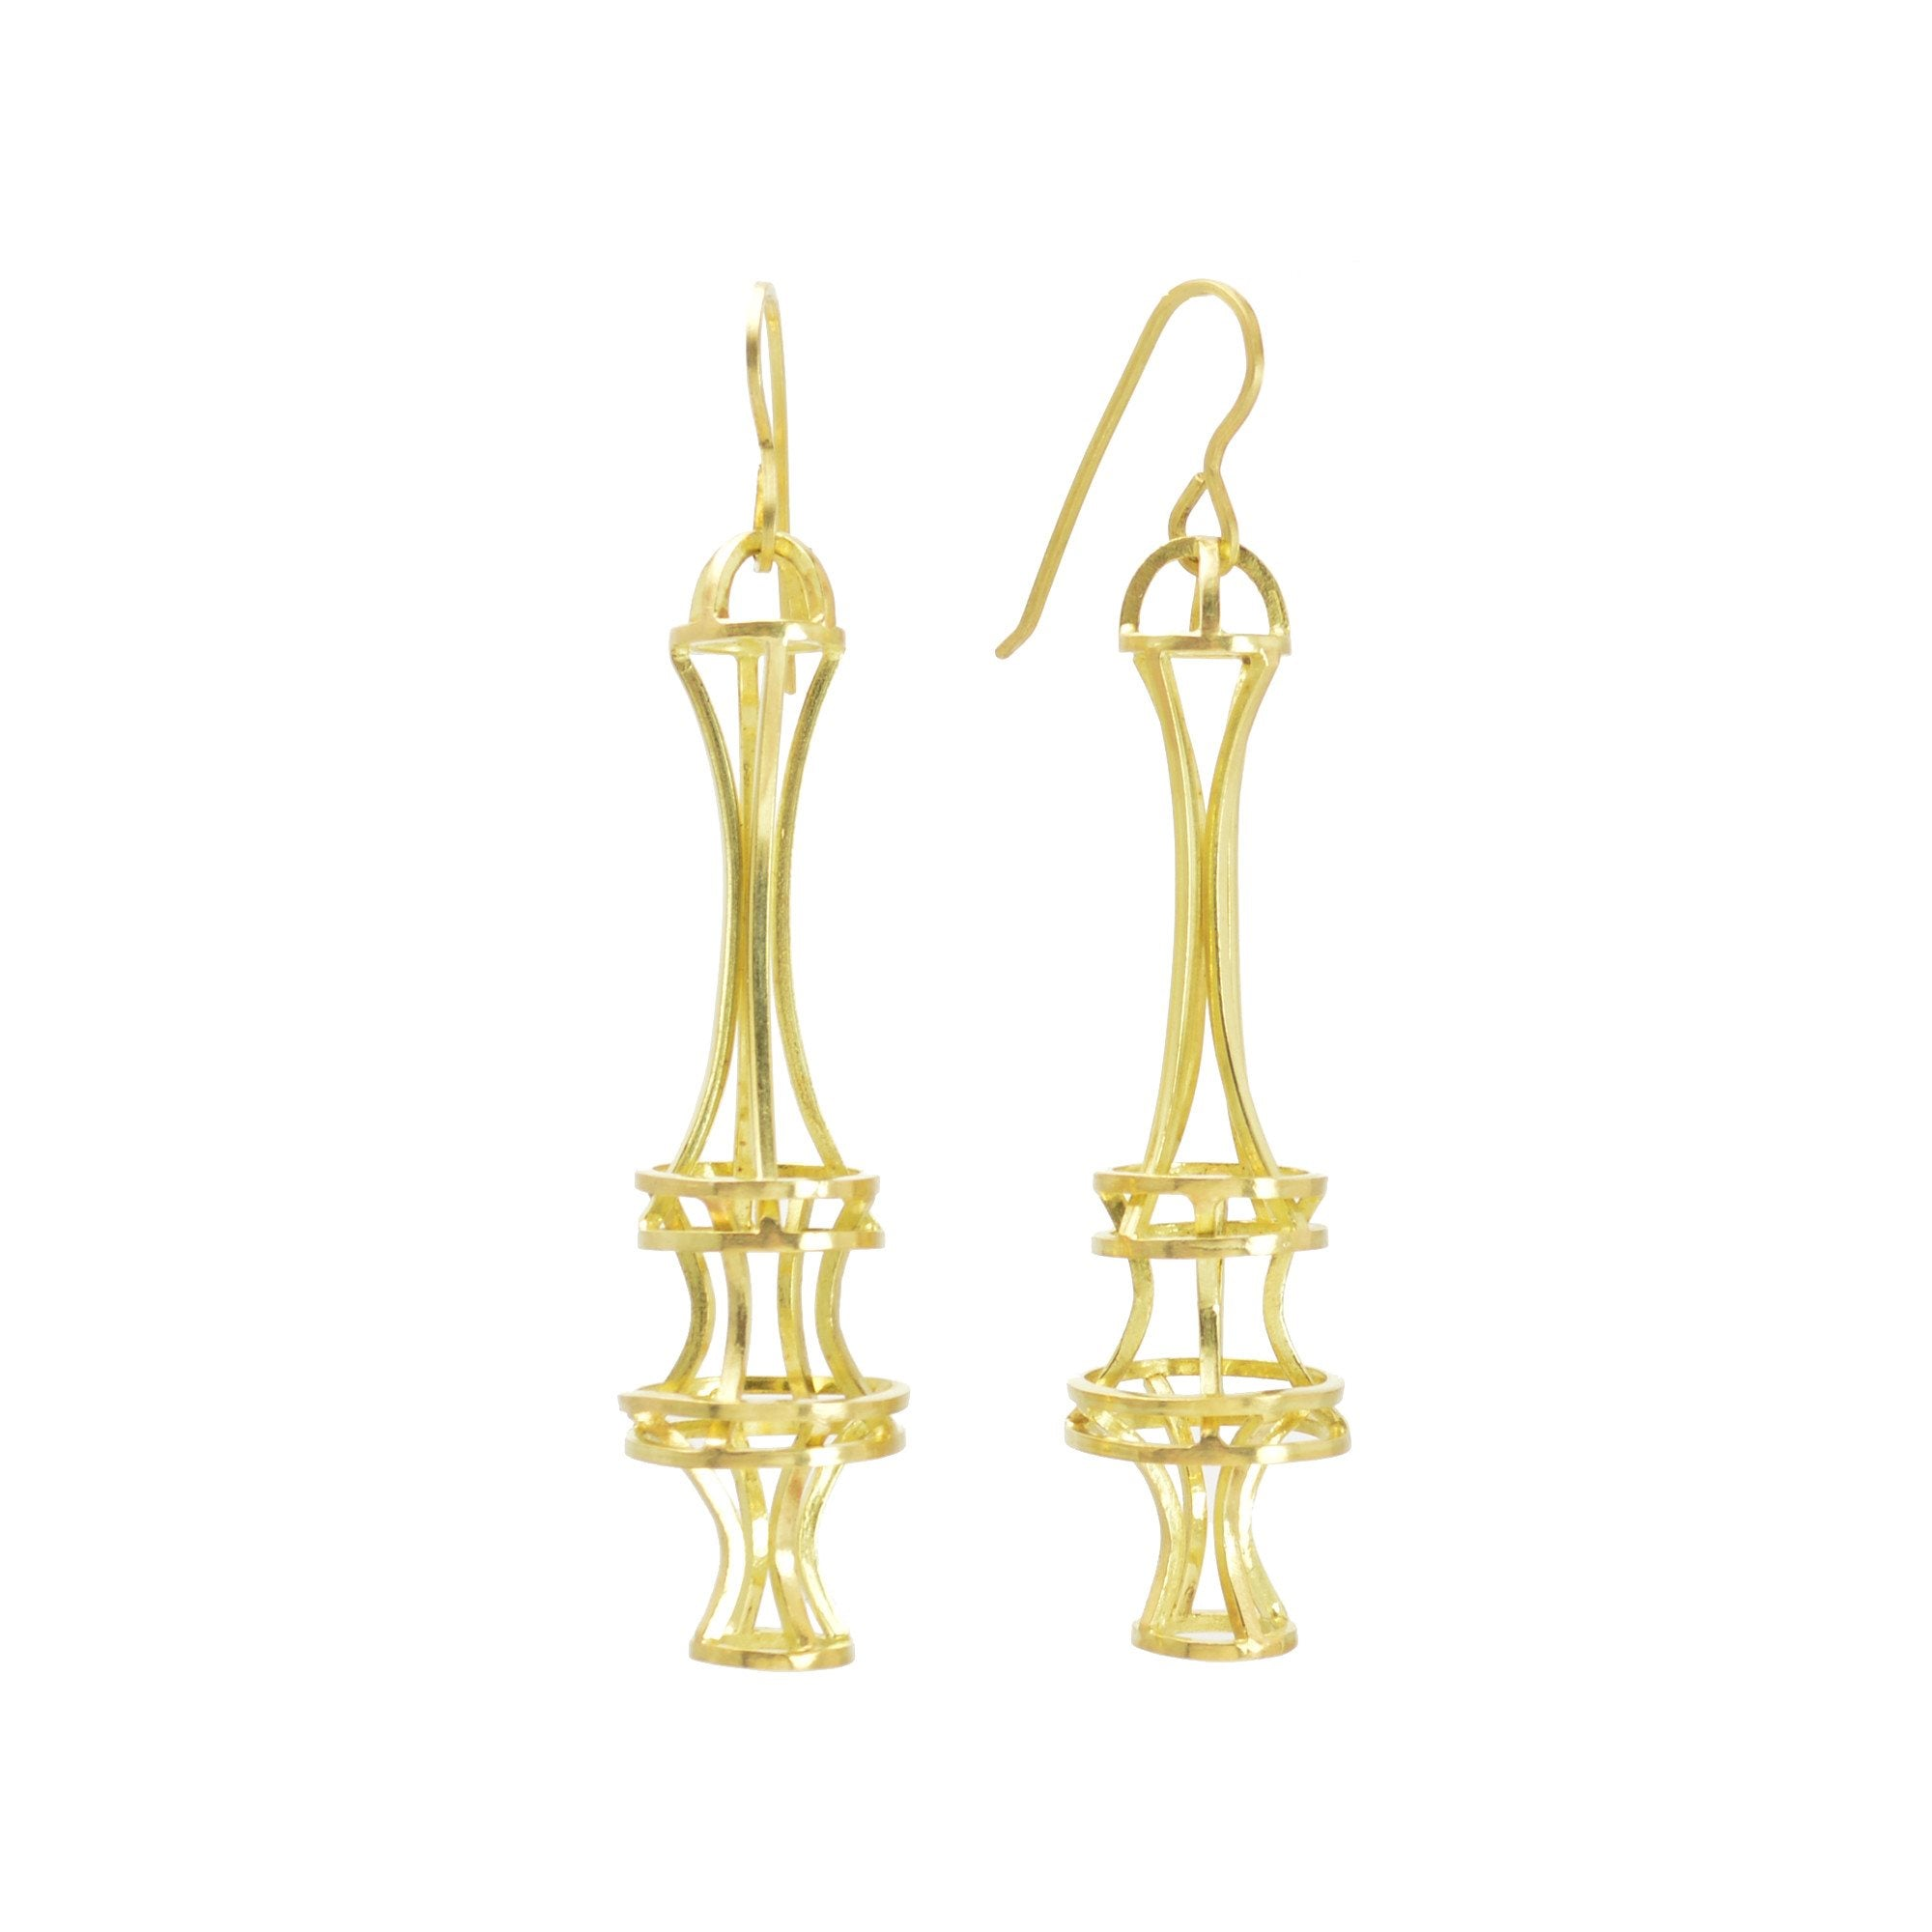 Vertebrae Earrings in 18k Gold